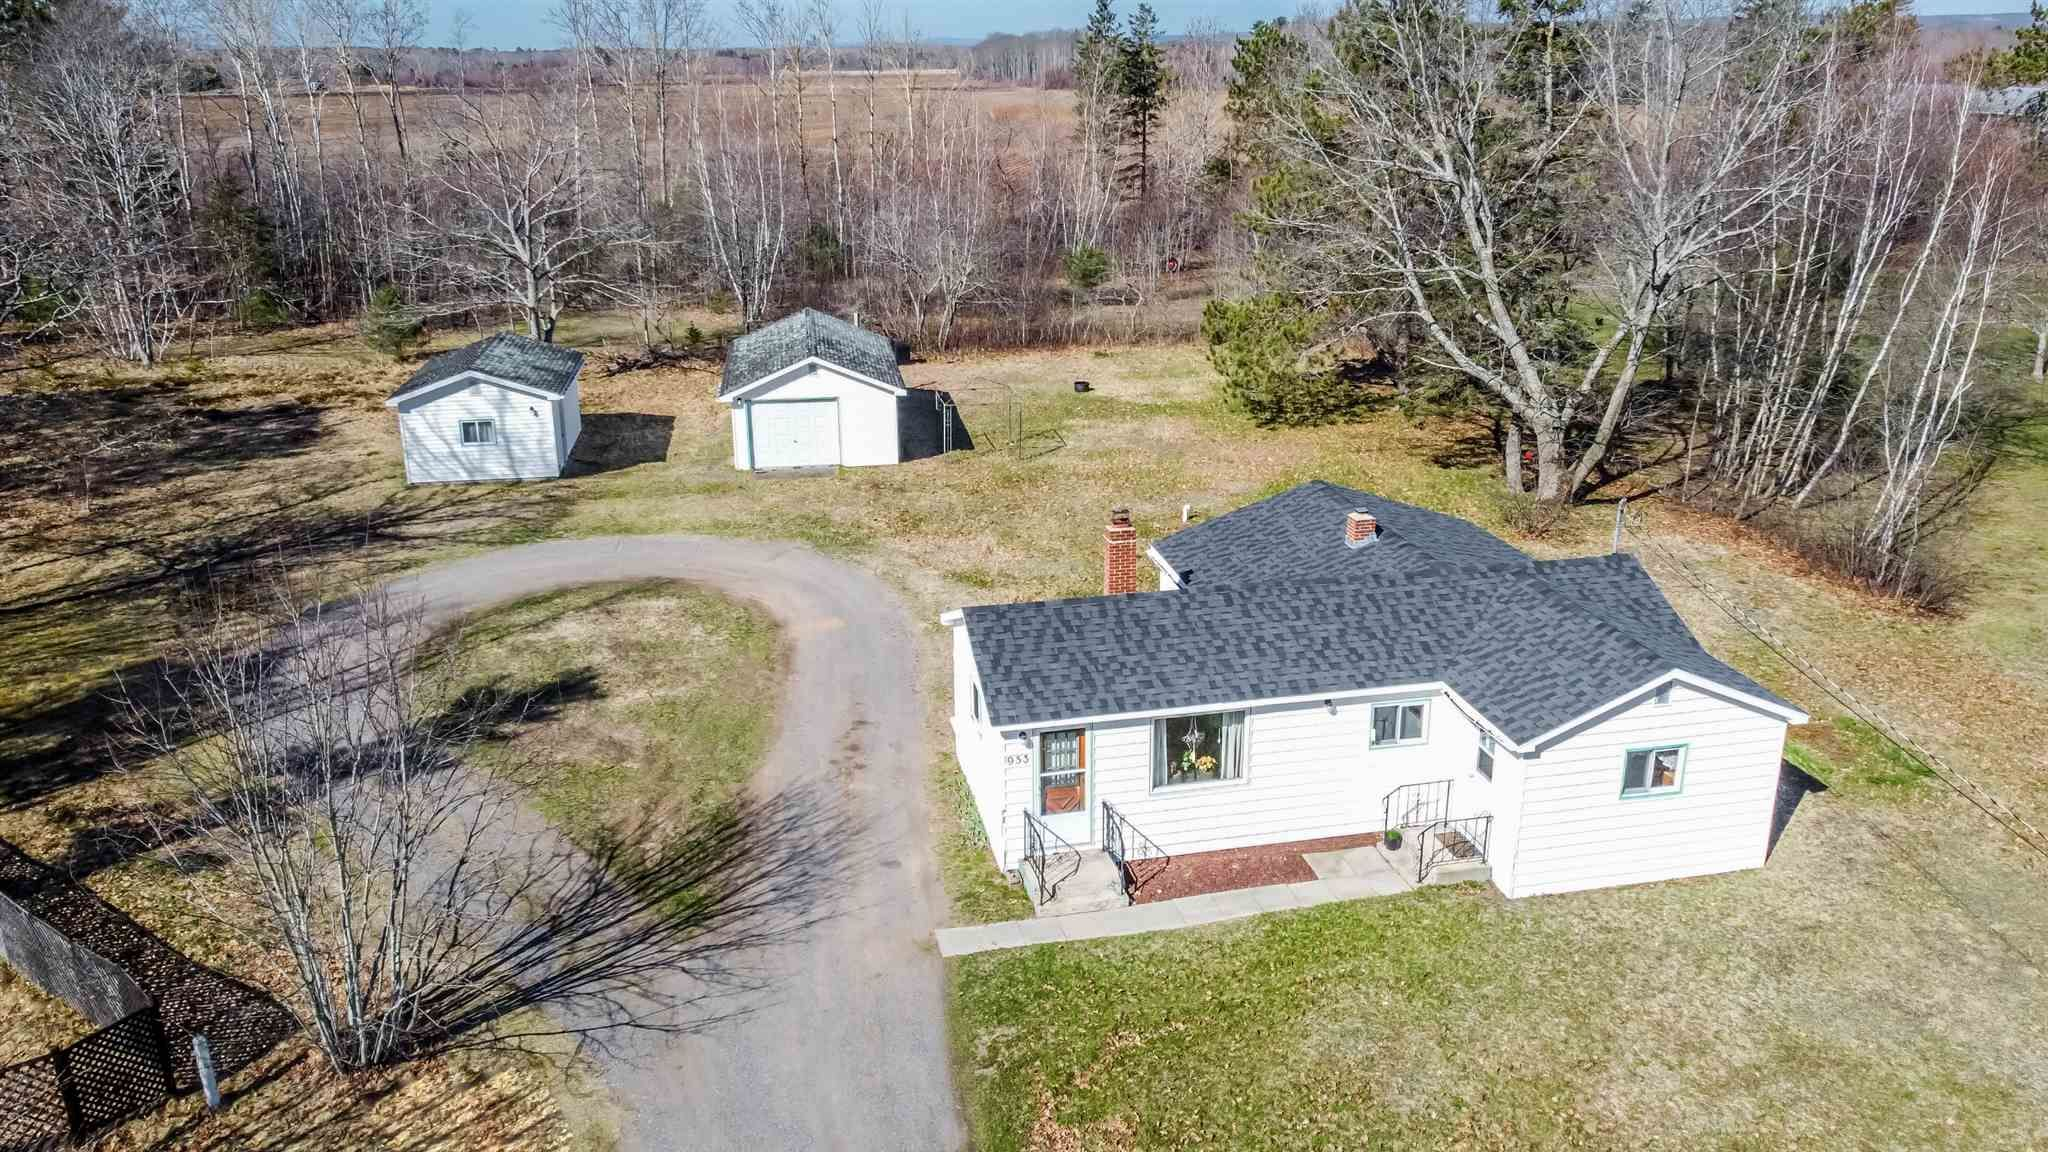 Main Photo: 953 Maple Avenue in Aylesford: 404-Kings County Residential for sale (Annapolis Valley)  : MLS®# 202109463